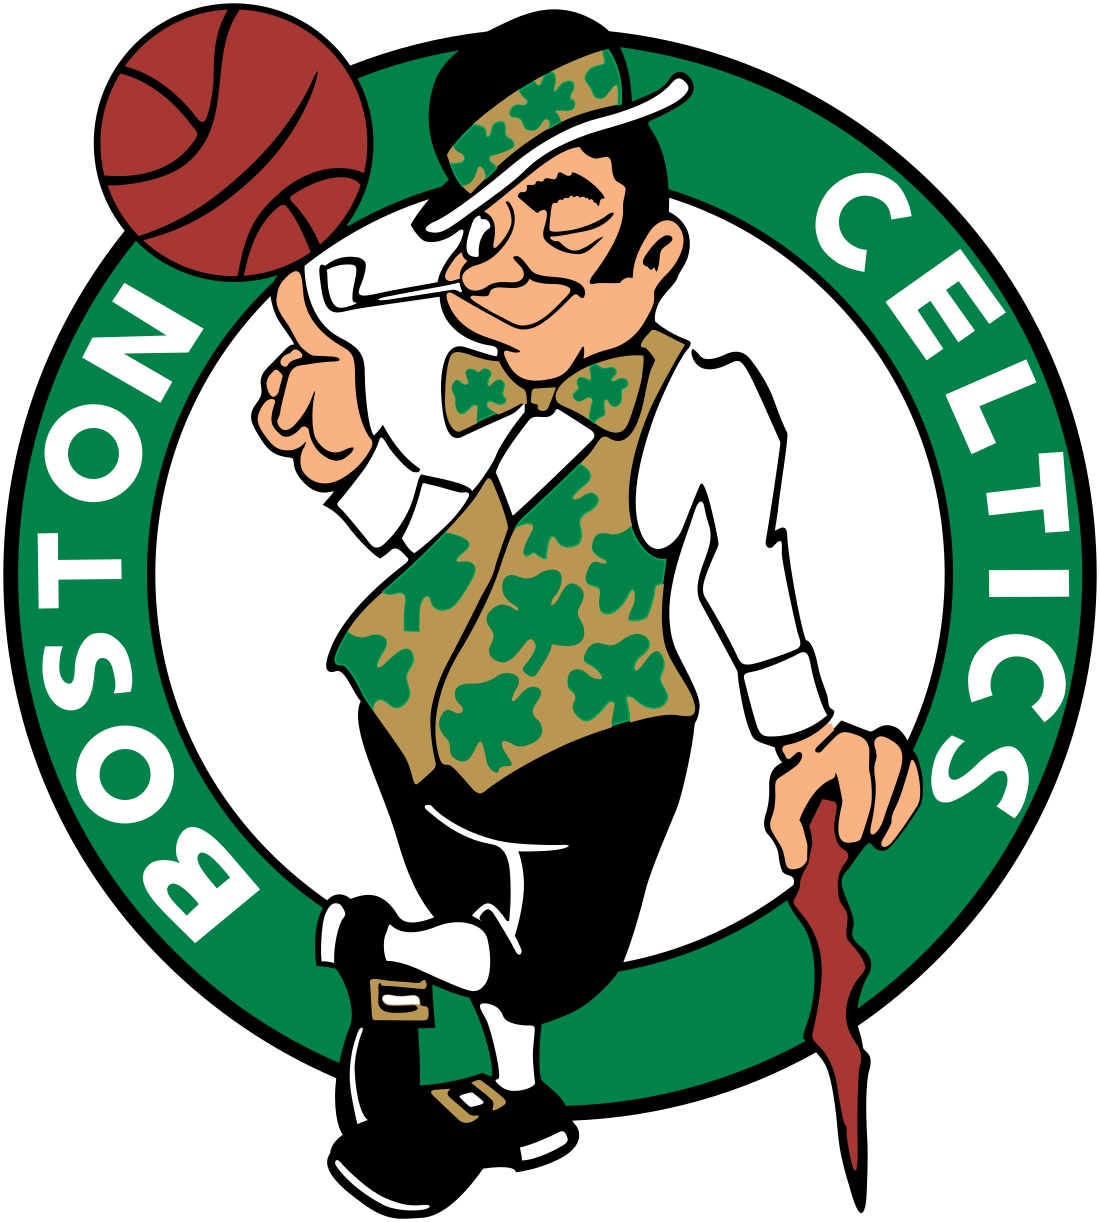 boston celtics logo 3 - Boston Celtics Logo